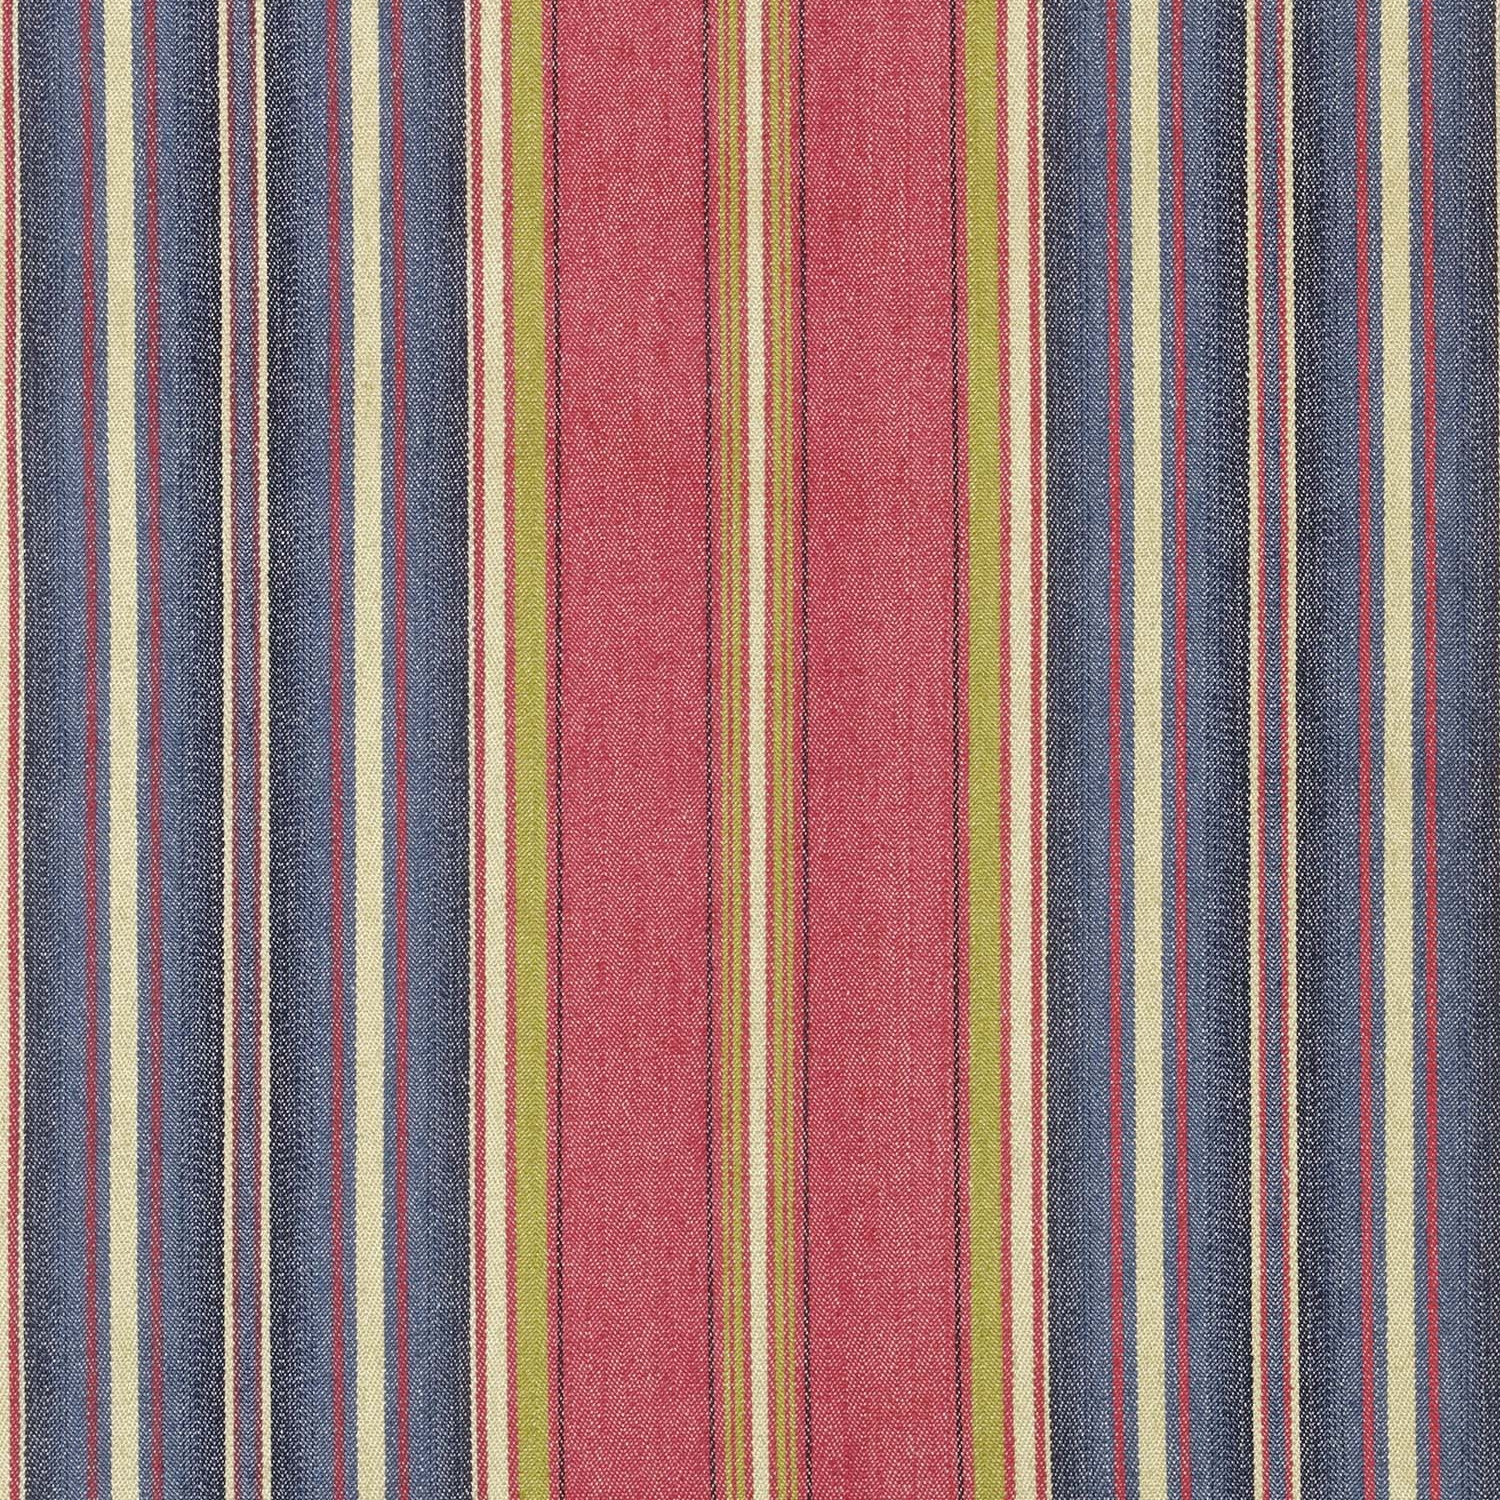 <p><strong>WINDSOR STRIPE</strong>red/blue 4900-05<a href=/the-winthorp-collection/windsor-stripe-red-blue-4900-05>More →</a></p>